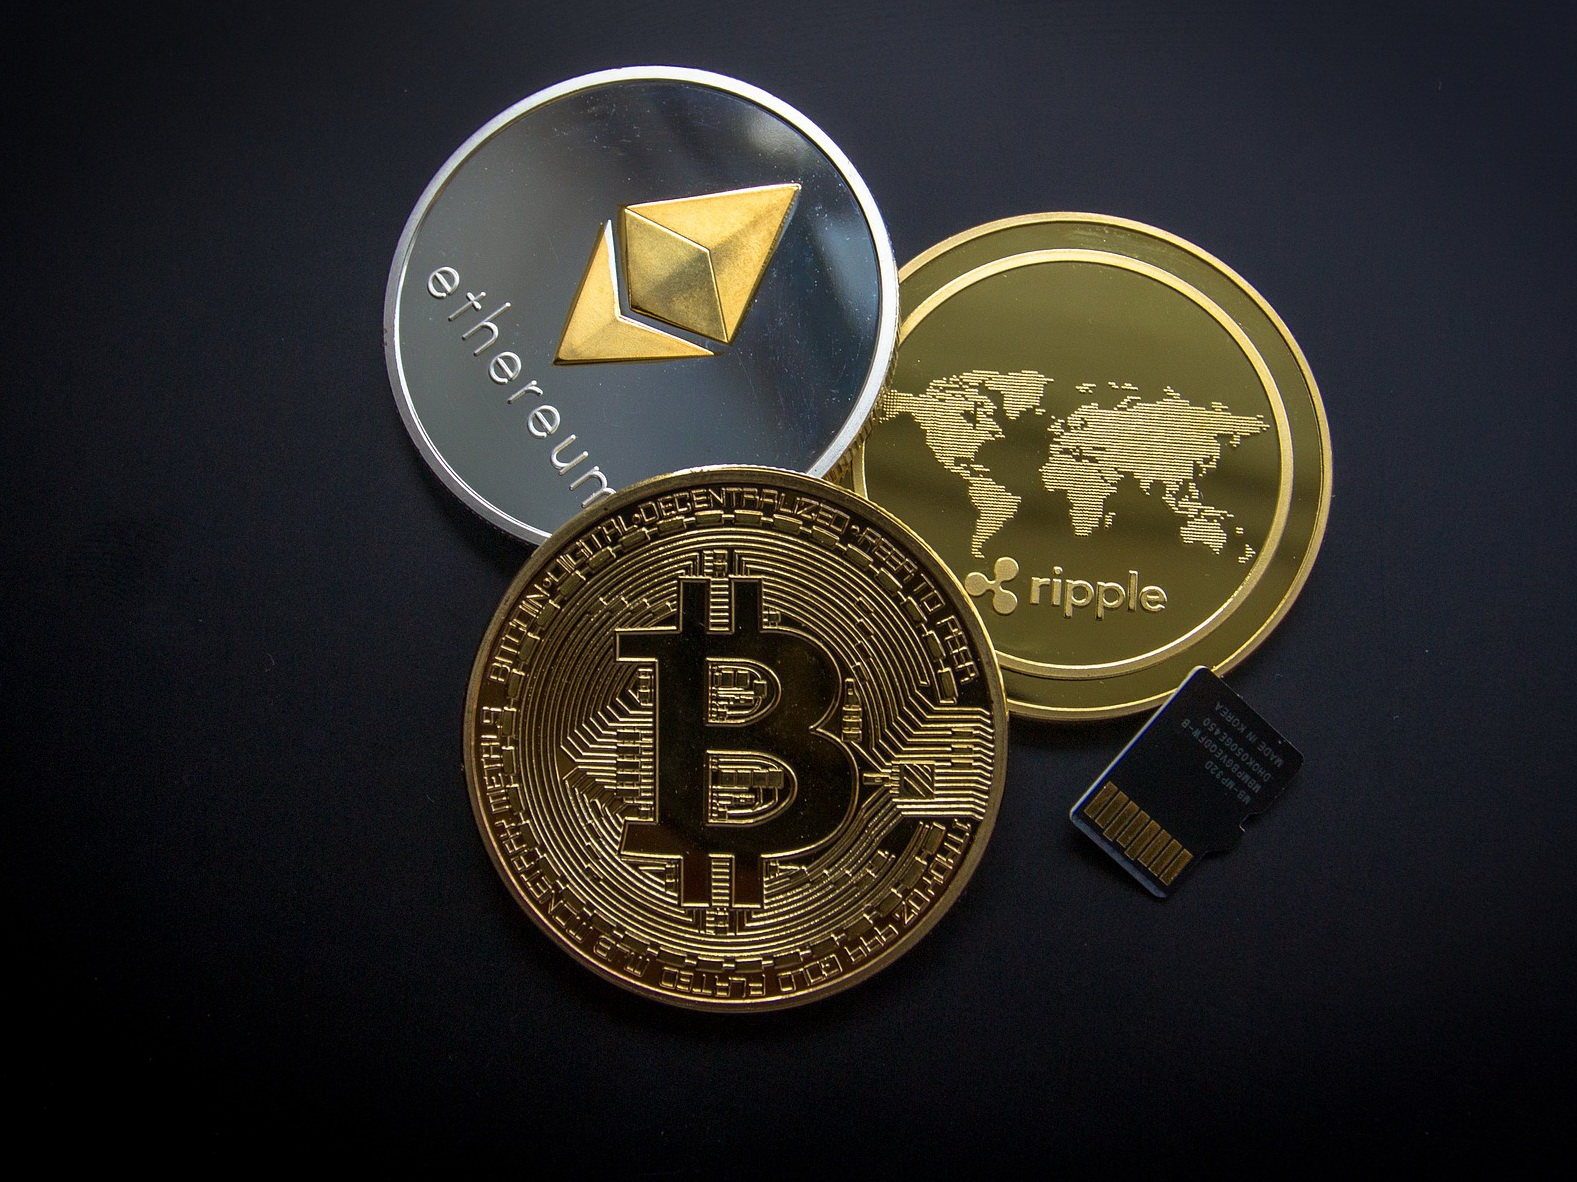 SET-UP-A-CRYPTOCURRENCY-ICO-OR-ITO